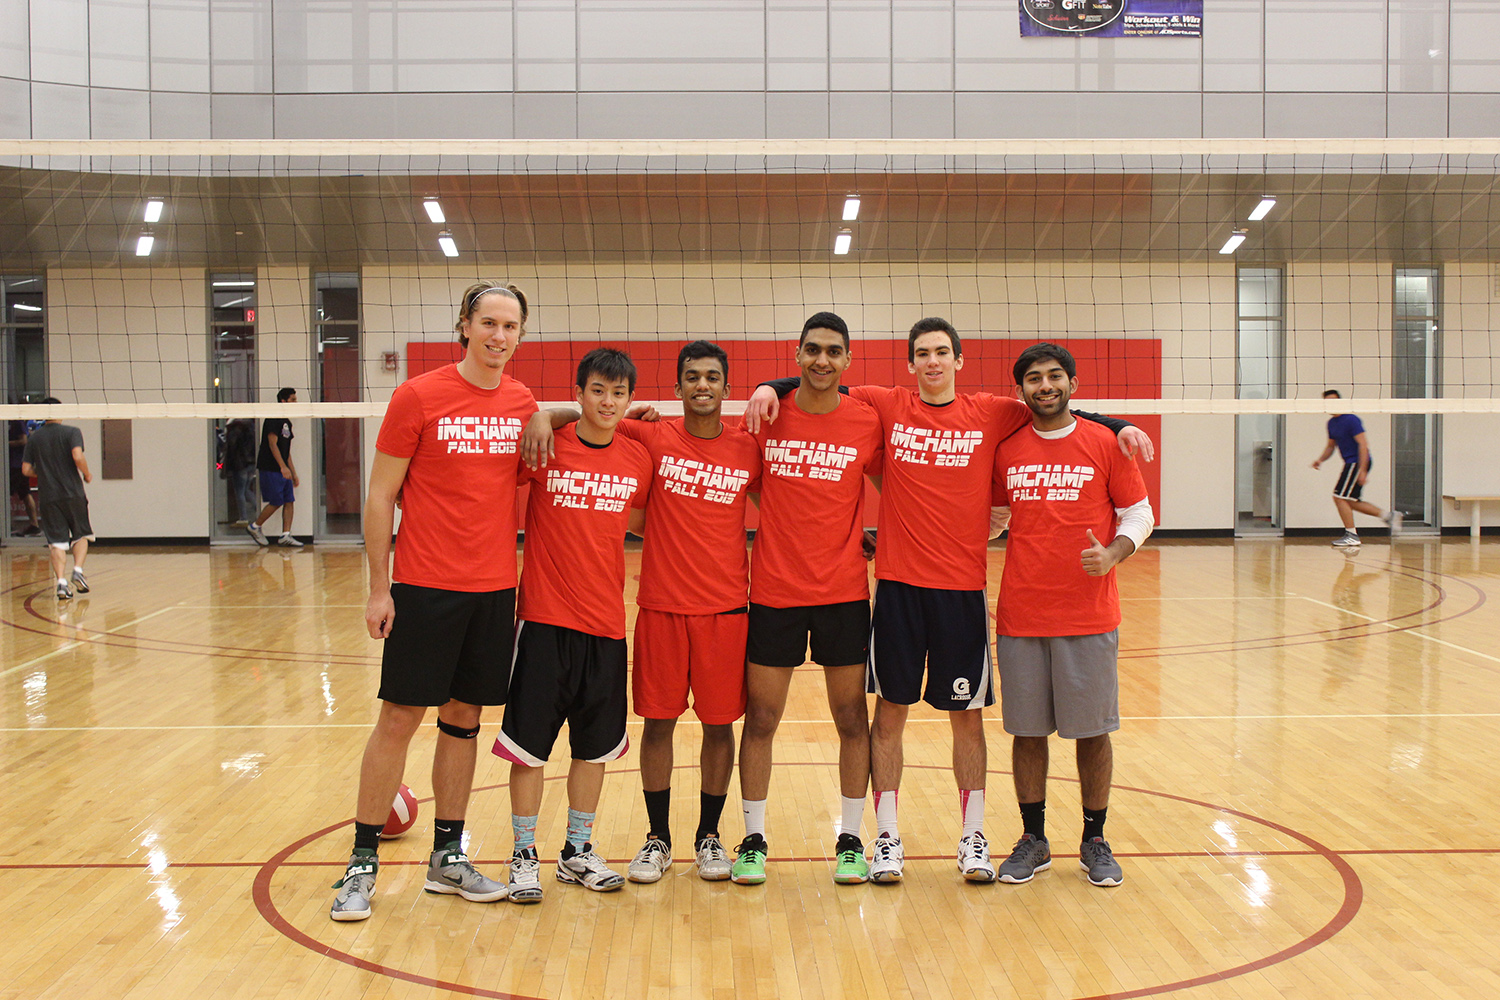 Wolfpack: Men's Recreational Fall Volleyball Champions